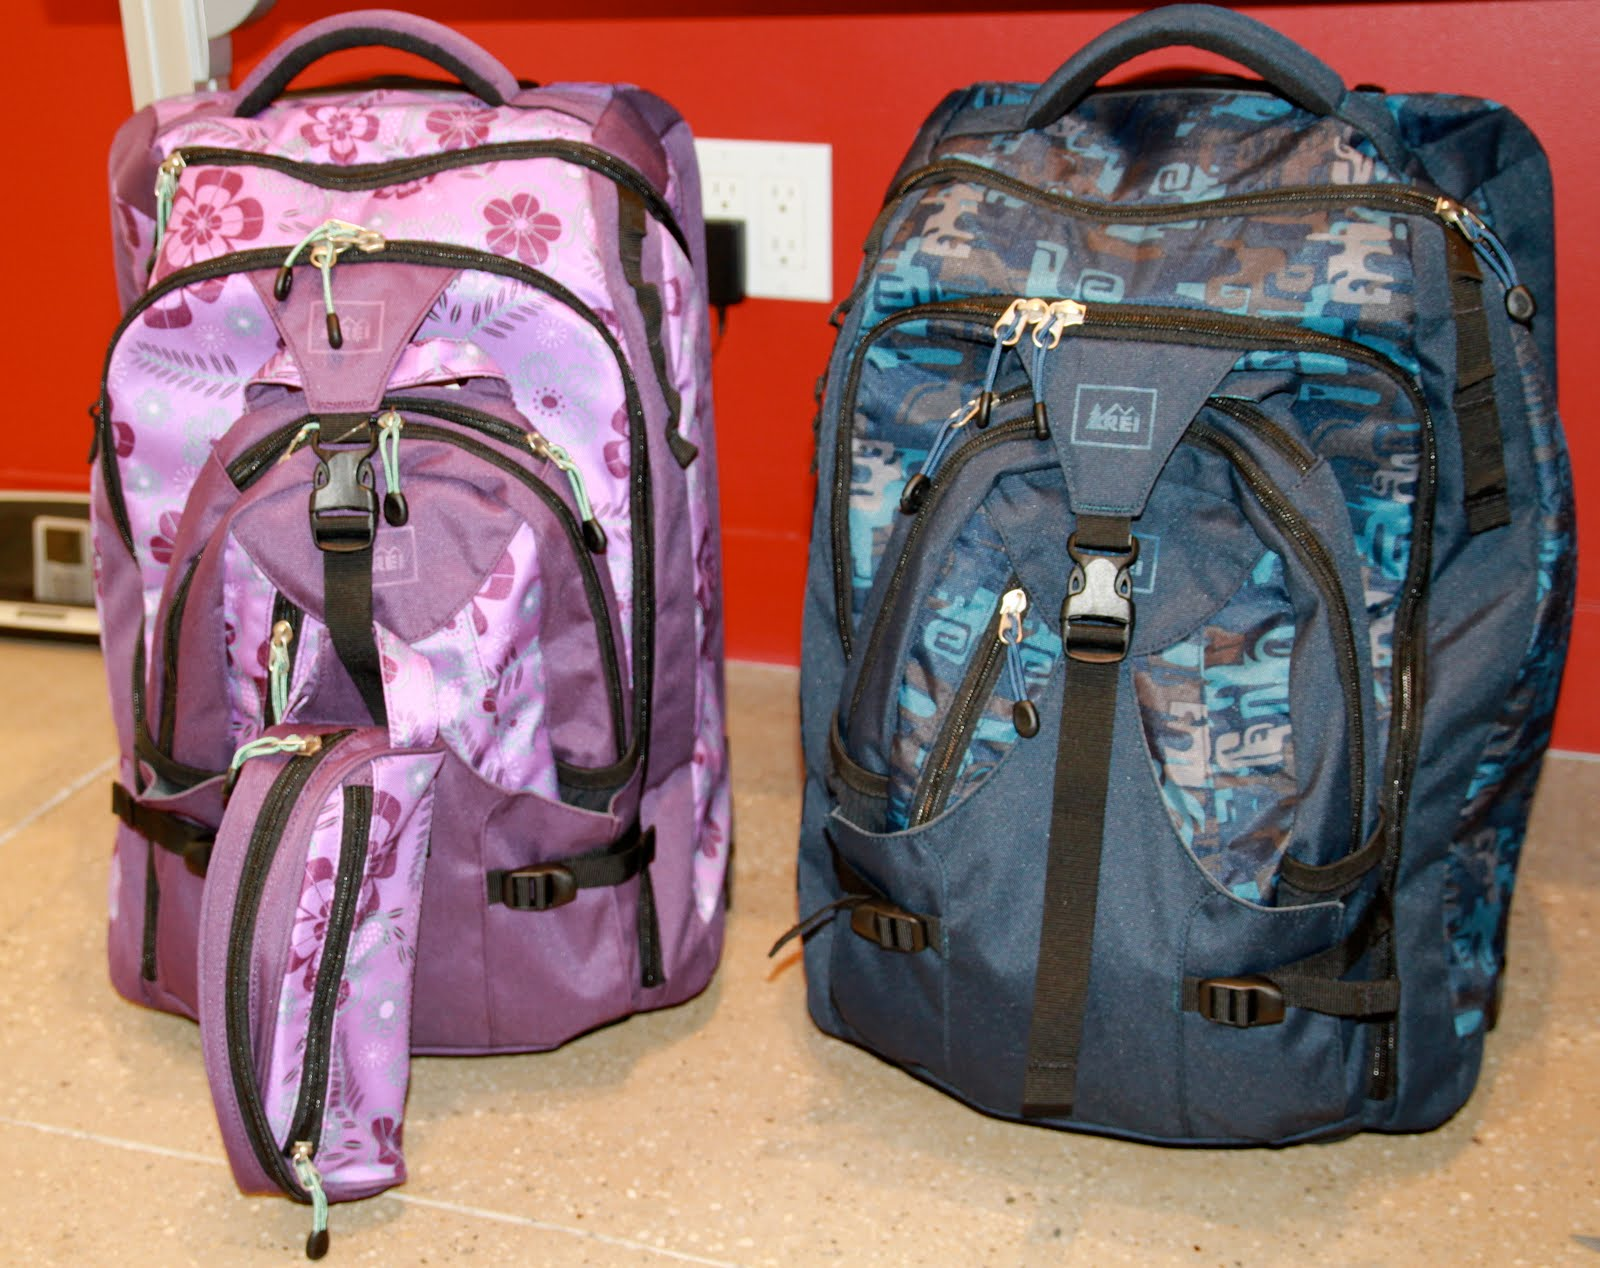 Rei Burton Top Outdoor Brands Take On Everyday Life Wear Gear Espro Madison Shoulder Handbag Navy And We Thought The Eco Sensitive Messenger Bags 4950 8450 Natalie Respectively Easy Eyesand Practical